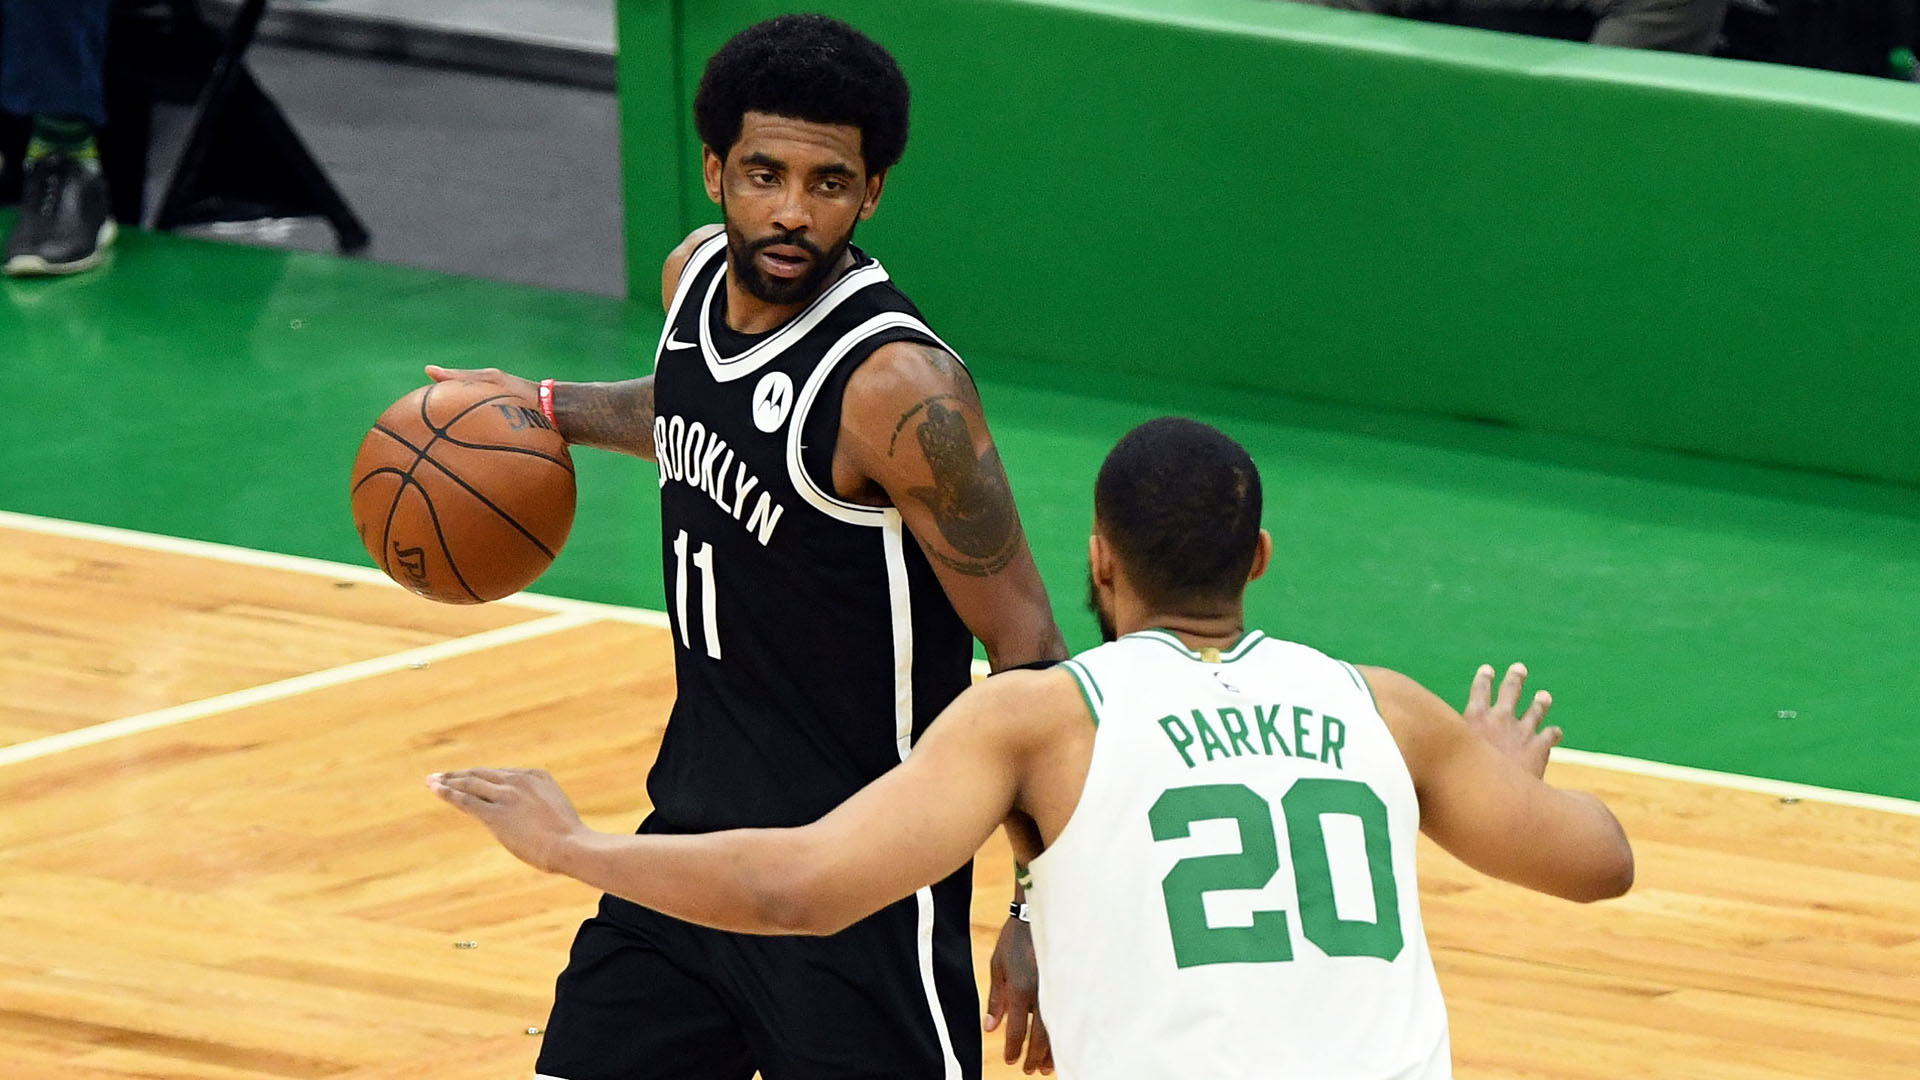 Fan who threw bottle at Kyrie Irving released on $500 bail